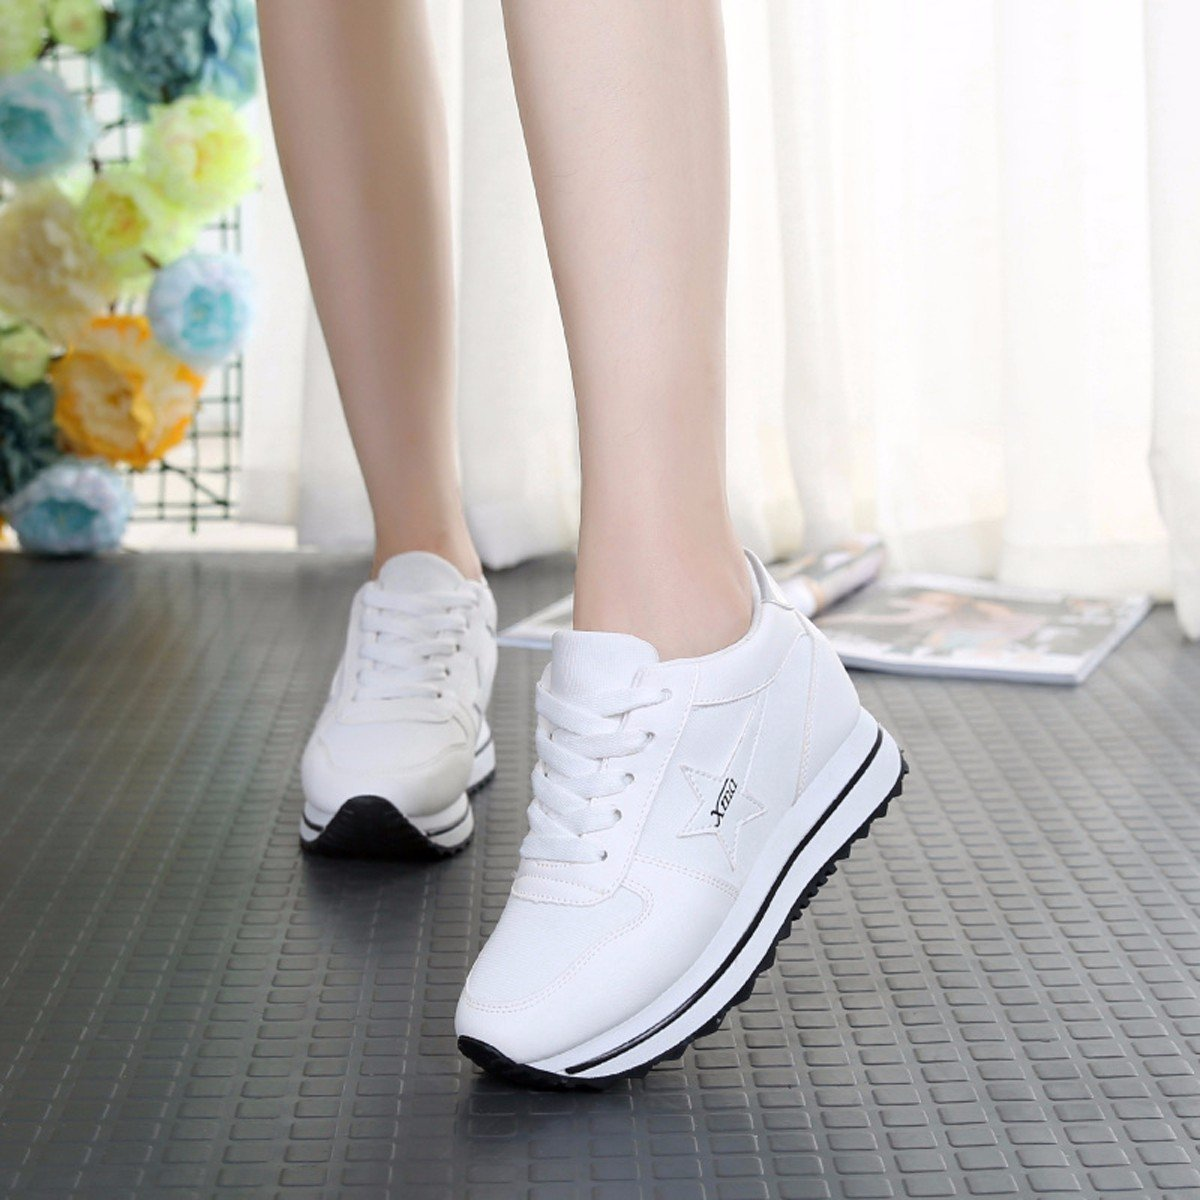 GTVERNH Women's shoes/Summer/In Spring Sneakers Thick Bottomed Shoes Women'S Shoes Casual Sports Leisure Higher Travel Shoes Thirty-Six White